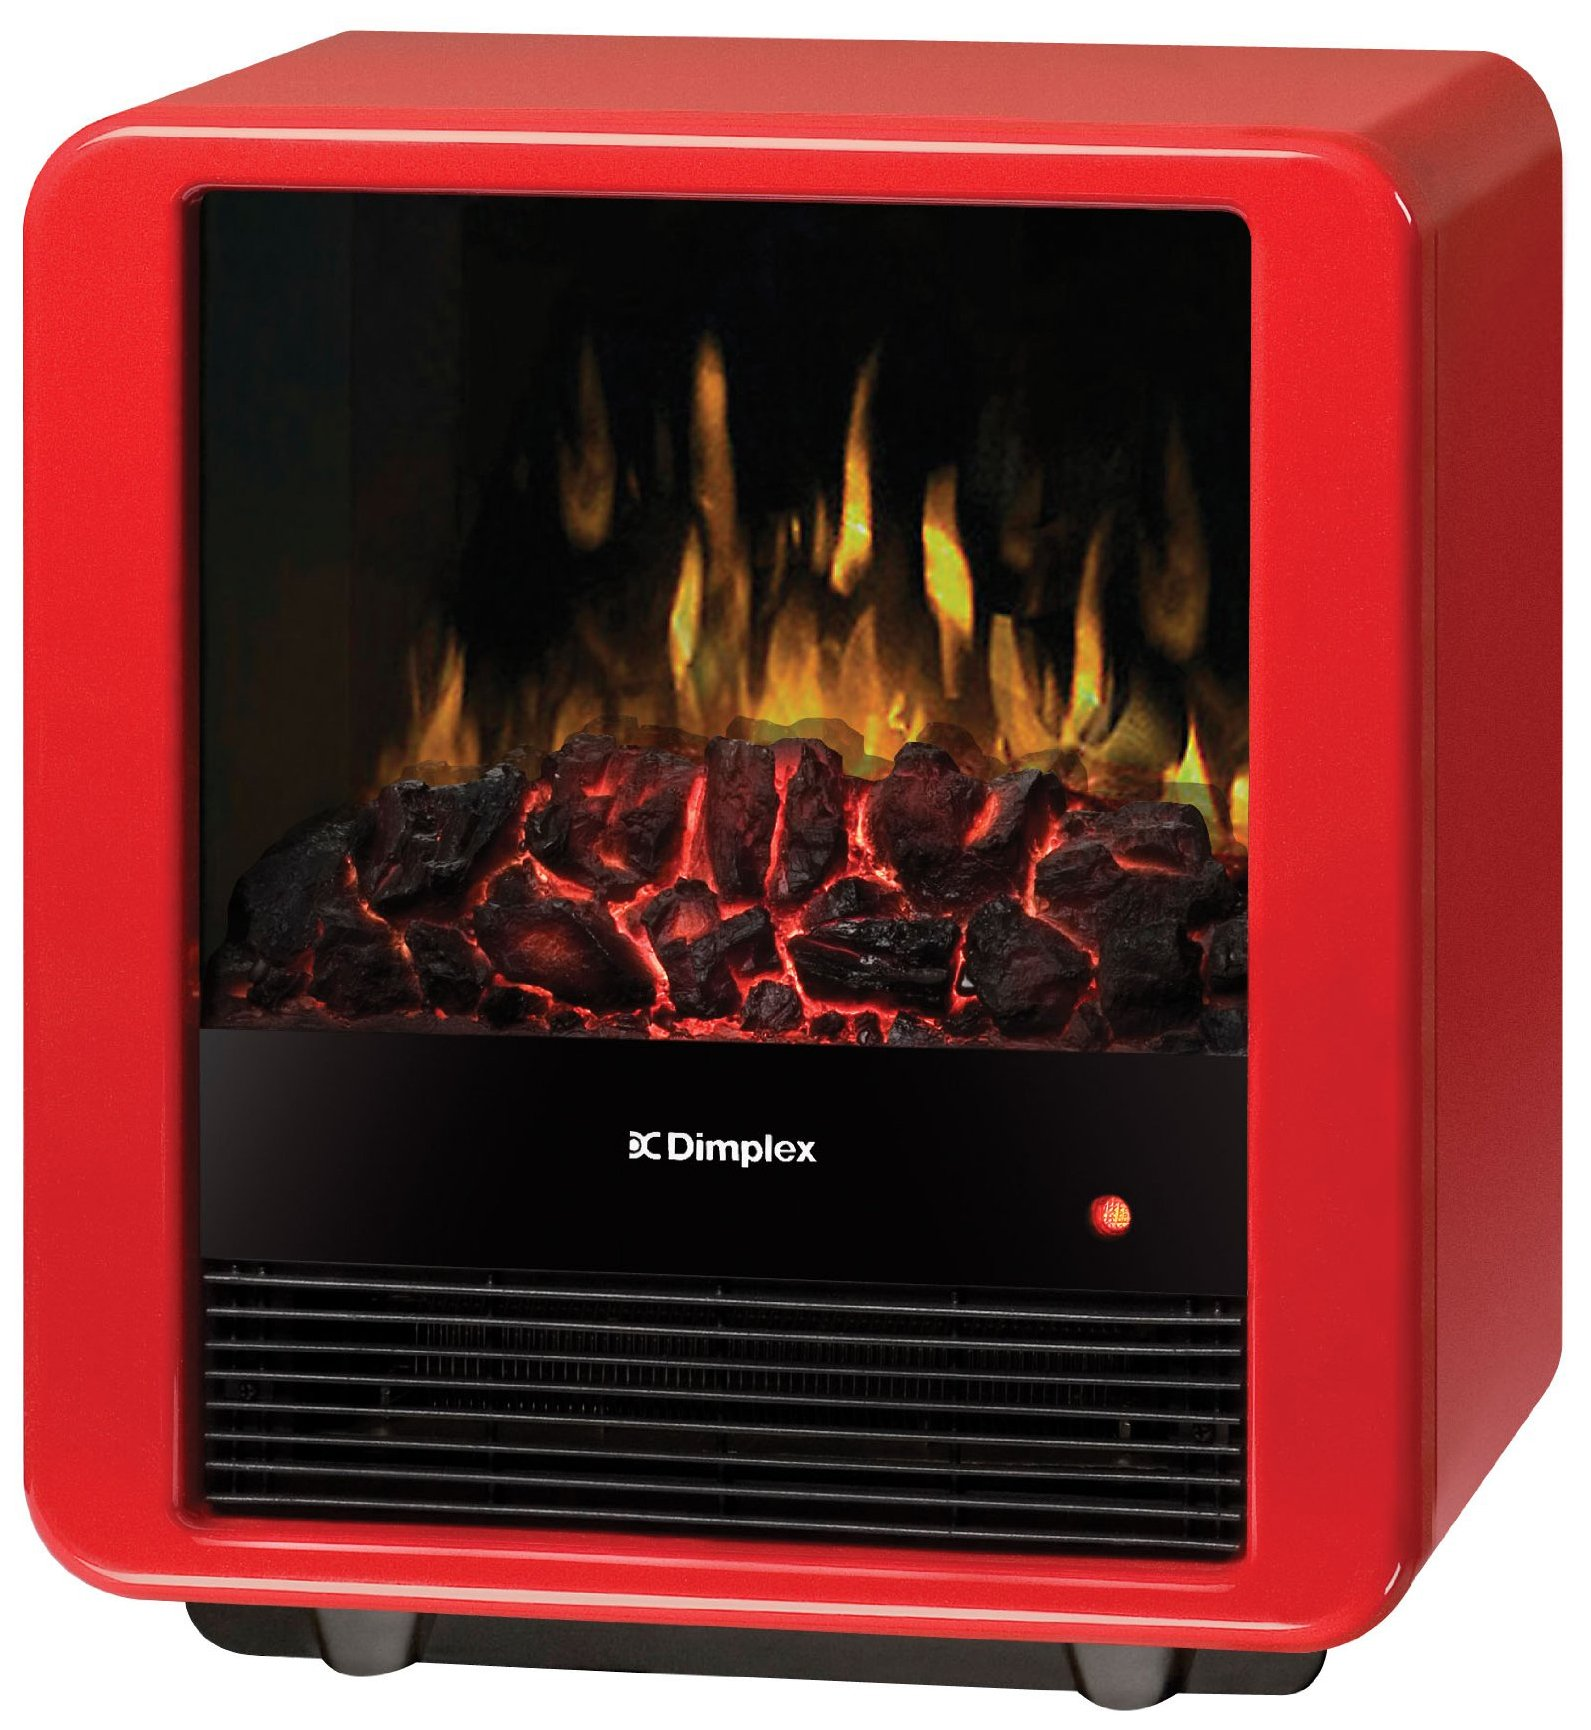 Dimplex Mini Cube Electric Stove, DMCS13R, Red by Dimplex